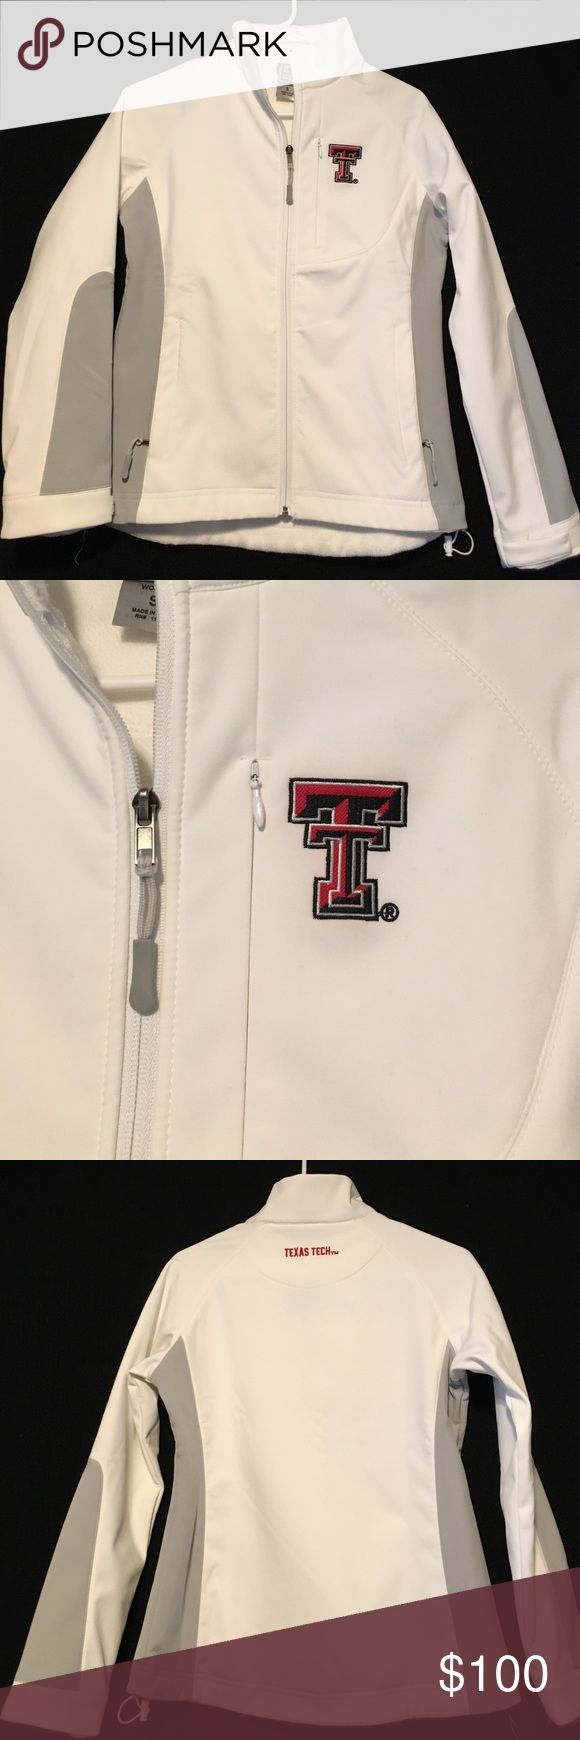 NEW Colosseum Athletics Texas Tech Jacket – Small This classy white Texas Tech jacket from Colosseum Athletics is BRAND NEW! It is size small, and fleece-lined with several zipper pockets. Colesseum Athletics Jackets & Coats Utility Jackets